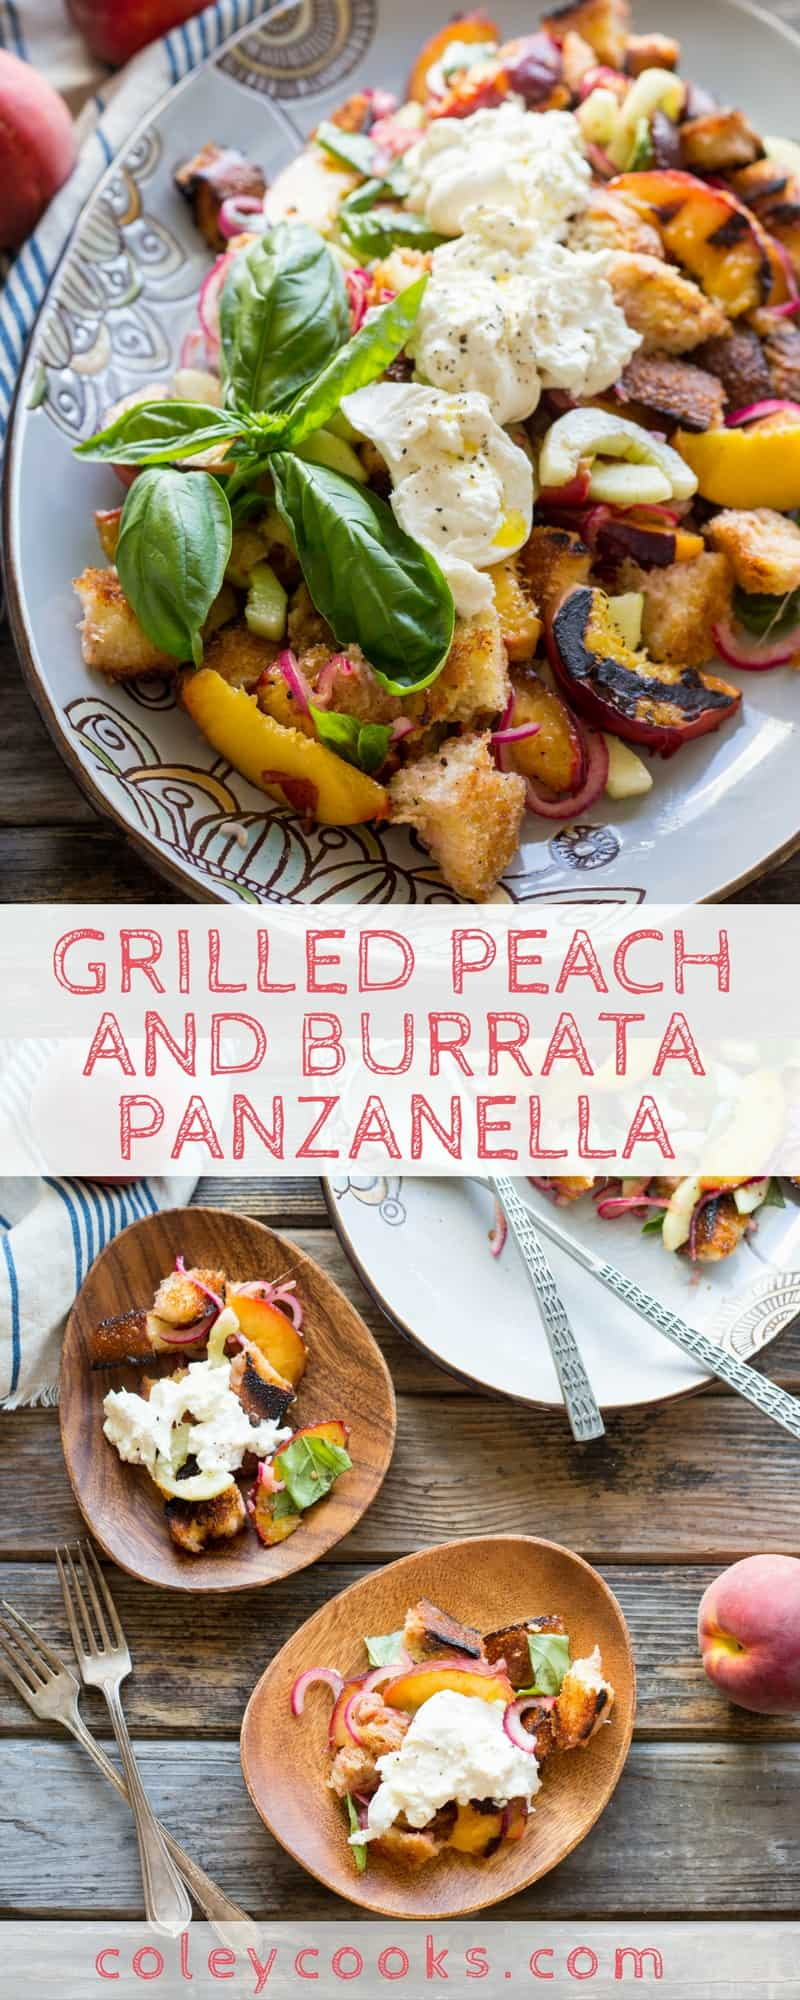 GRILLED PEACH PANZANELLA with BURRATA | This easy summer salad recipe pairs sweet caramelized grilled peaches and a big hunk of creamy burrata for a twist on a classic Tuscan panzanella salad. | ColeyCooks.com